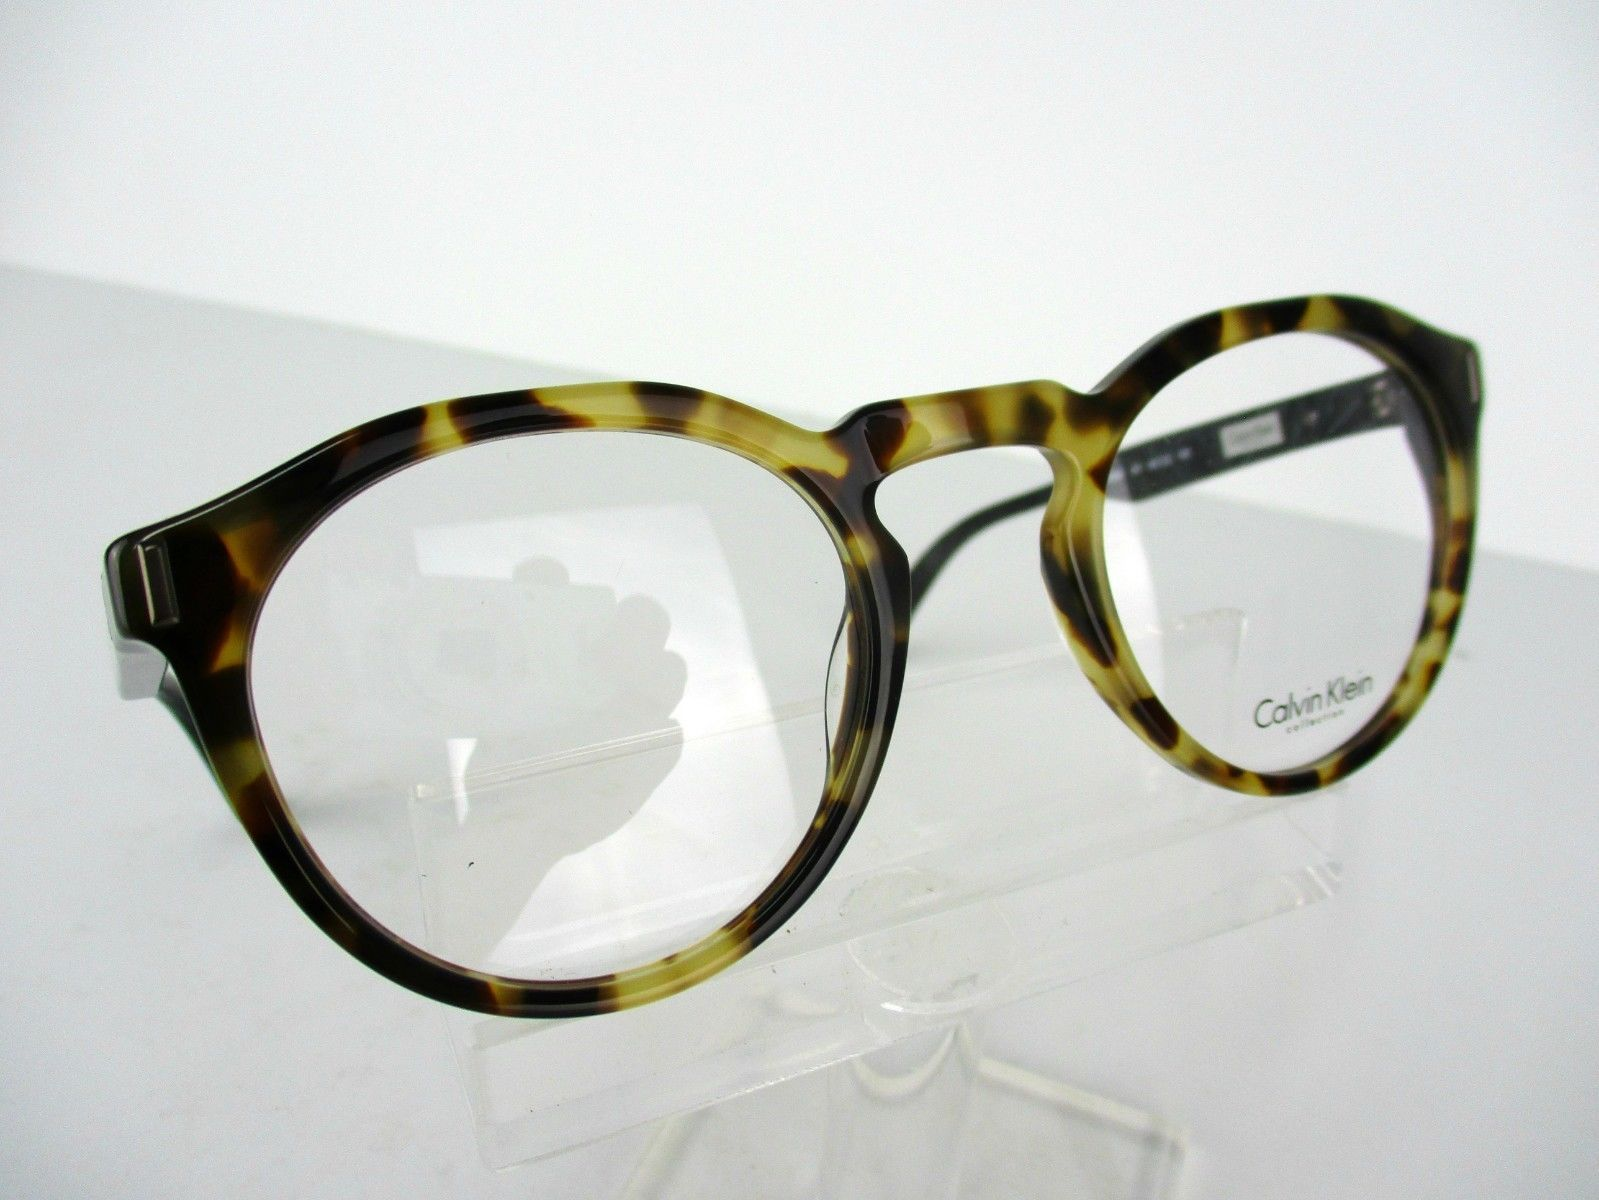 0c2a592a59 Calvin Klein Ck 8561 (281) Tokyo Tortoise 49 and 50 similar items